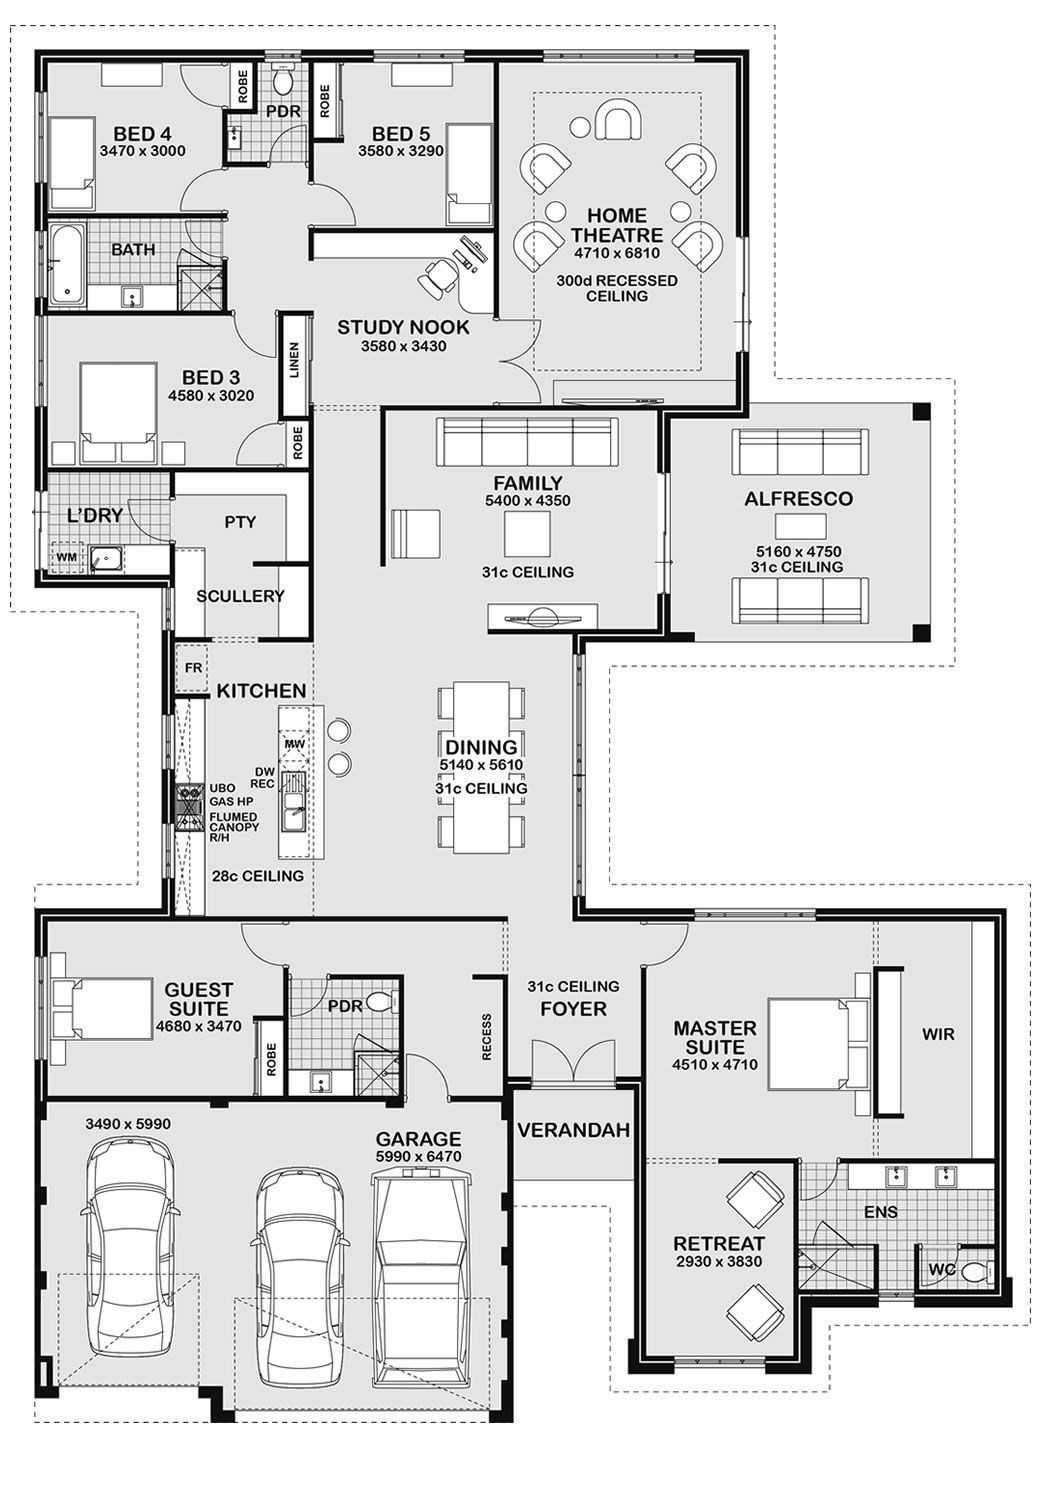 Pin By Elza Hayes On My Favourite Floor Plans Floor Plans Dream House Plans Bedroom House Plans